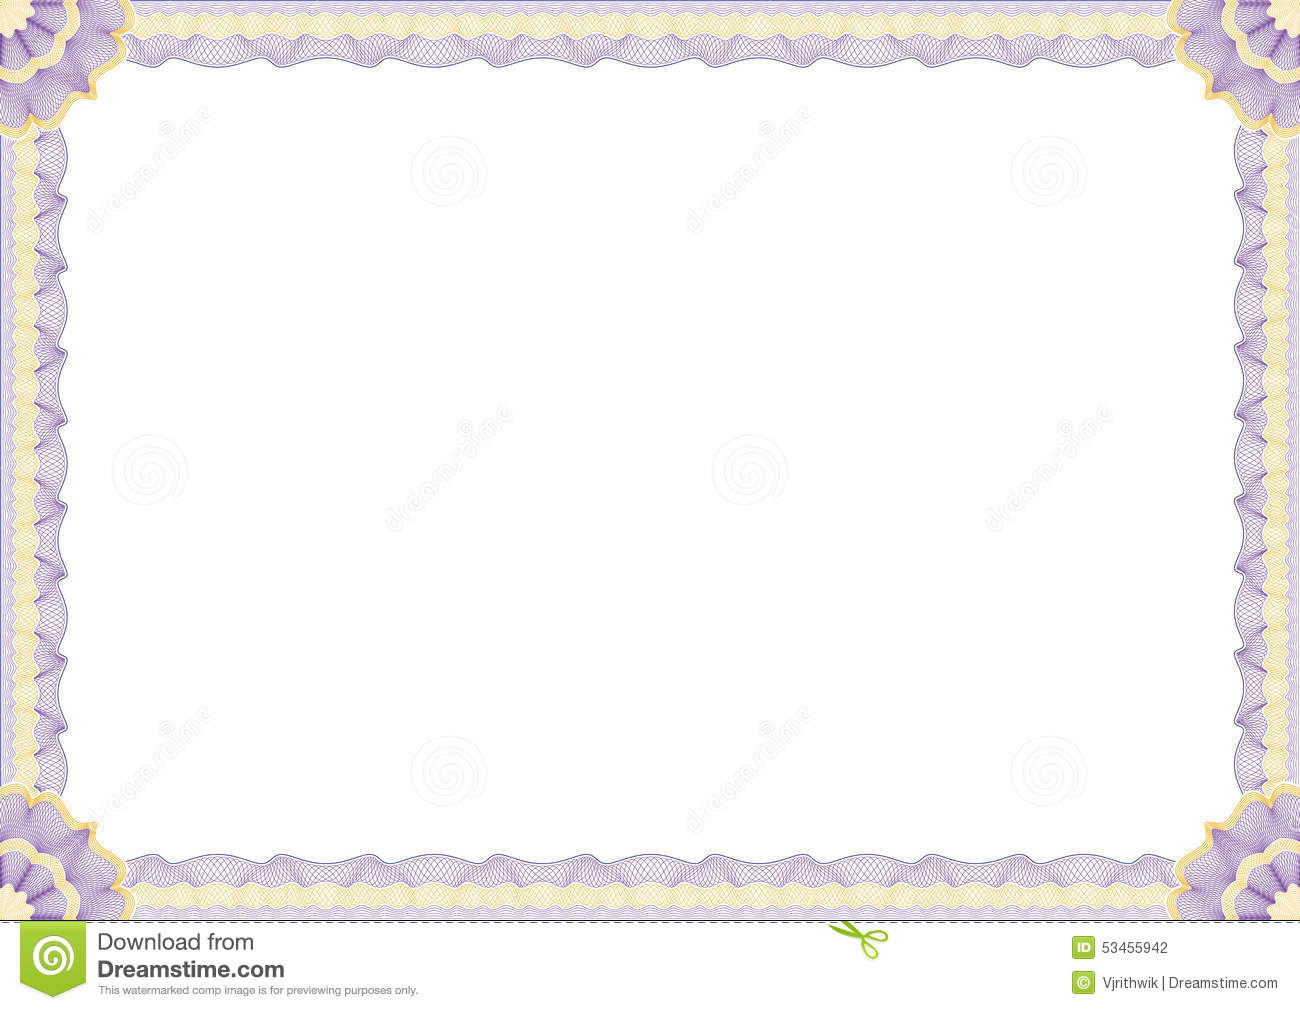 Fancy Diploma Border | www.pixshark.com - Images Galleries ...